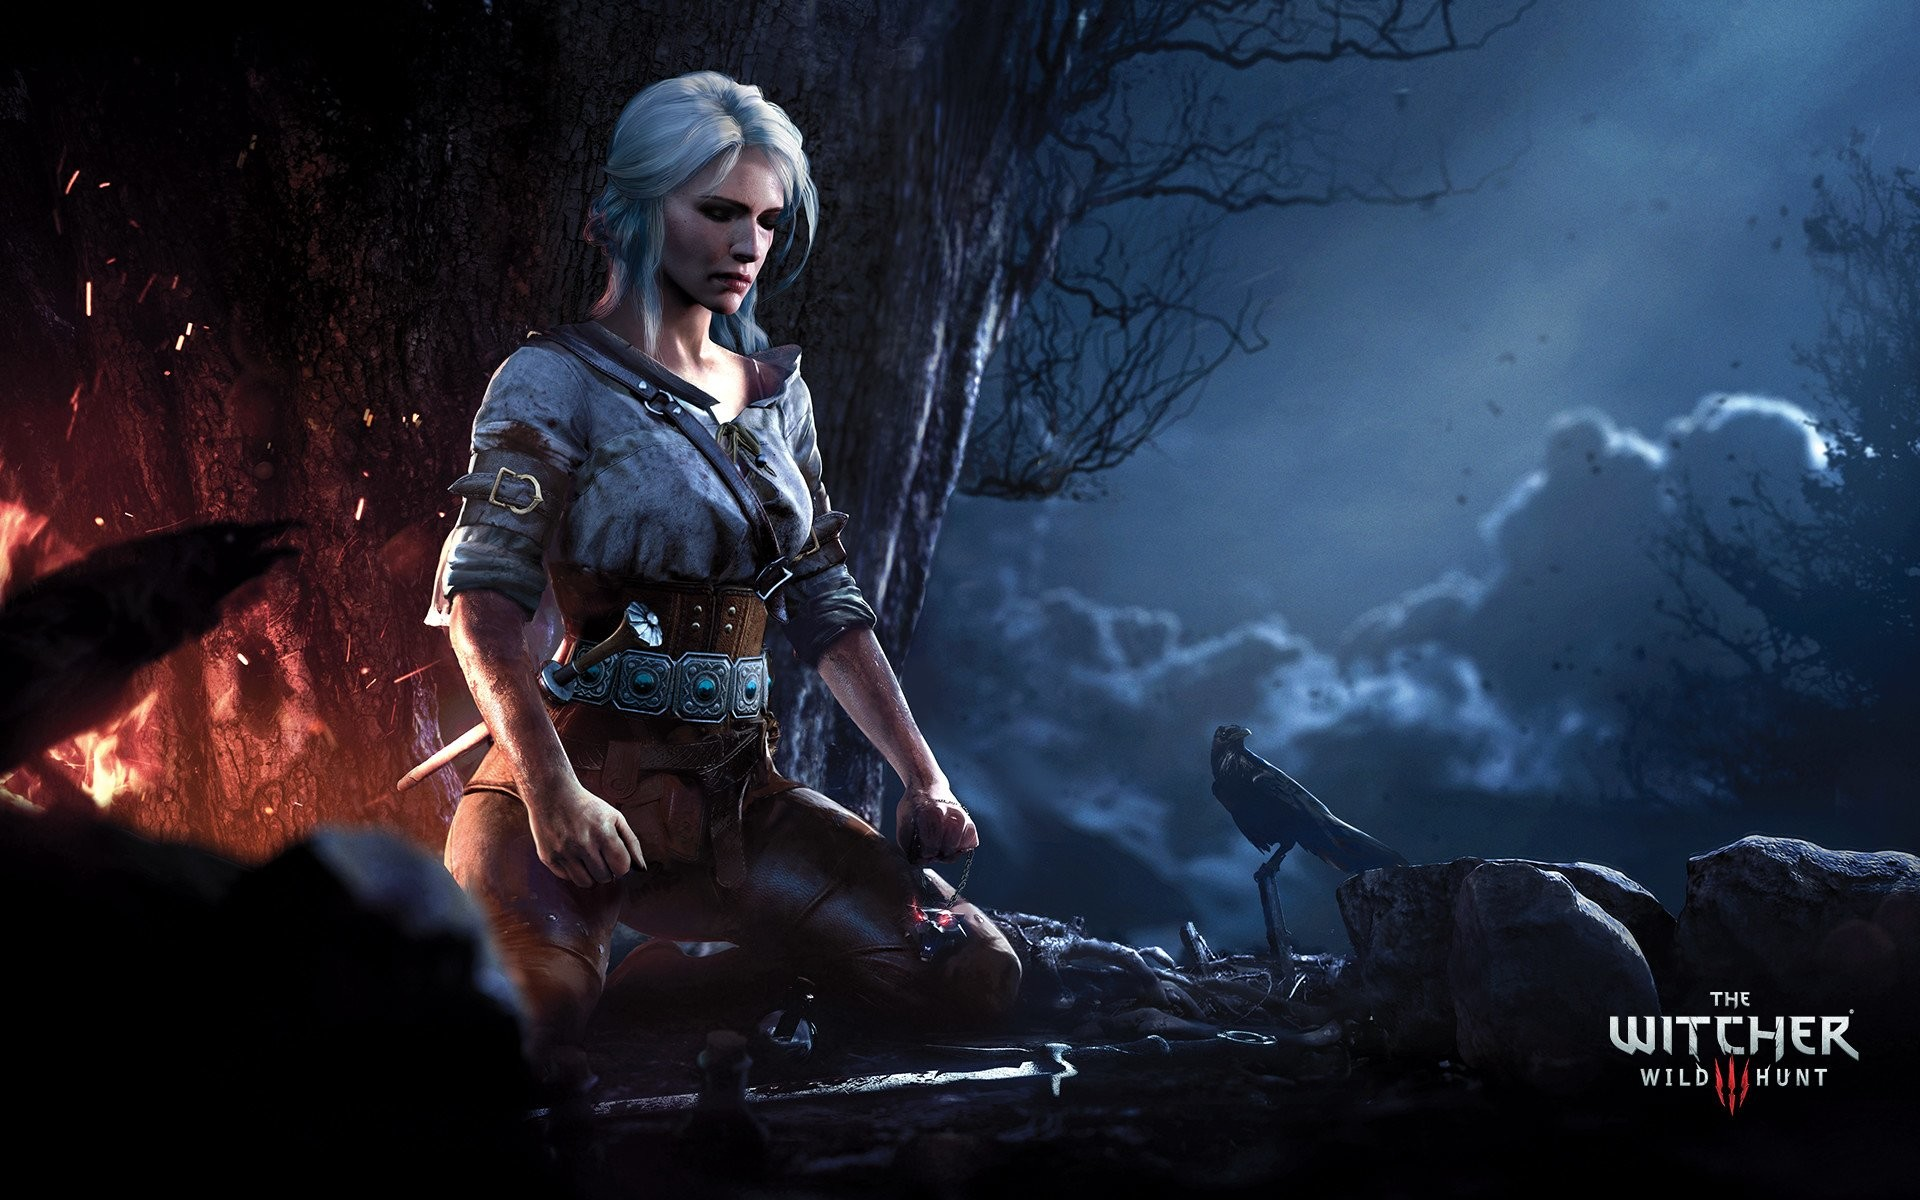 The Witcher 3 Wallpapers Wallpapertag